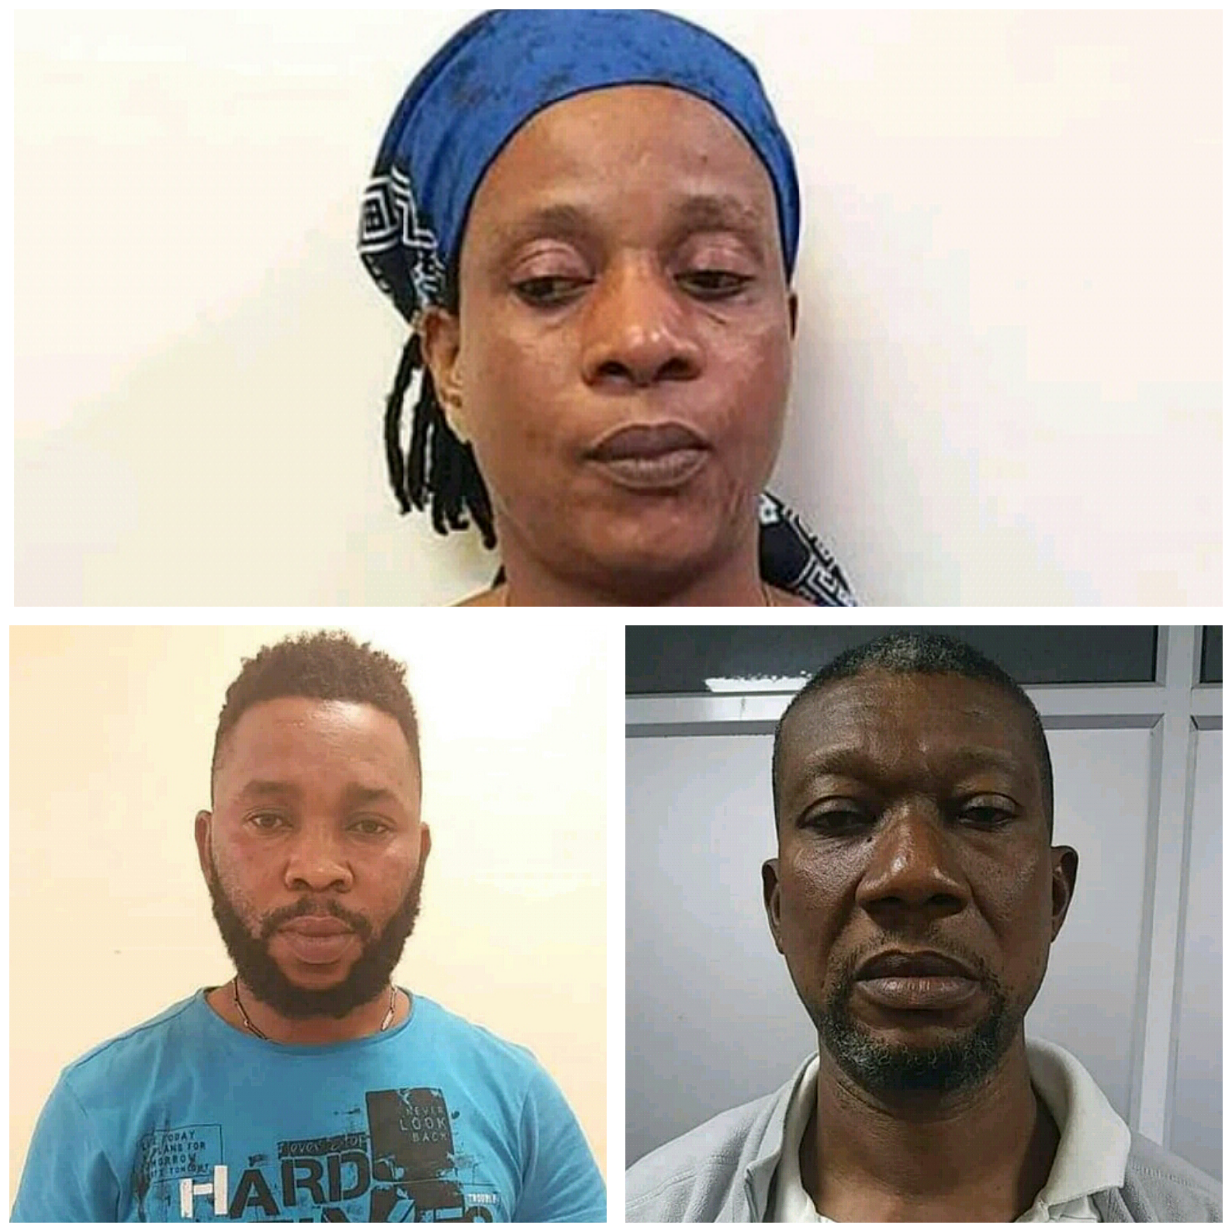 NDLEA arrests woman with 35 wraps of cocaine concealed in her underwear at Lagos airport; intercepts Italy, Turkey-bound drugs